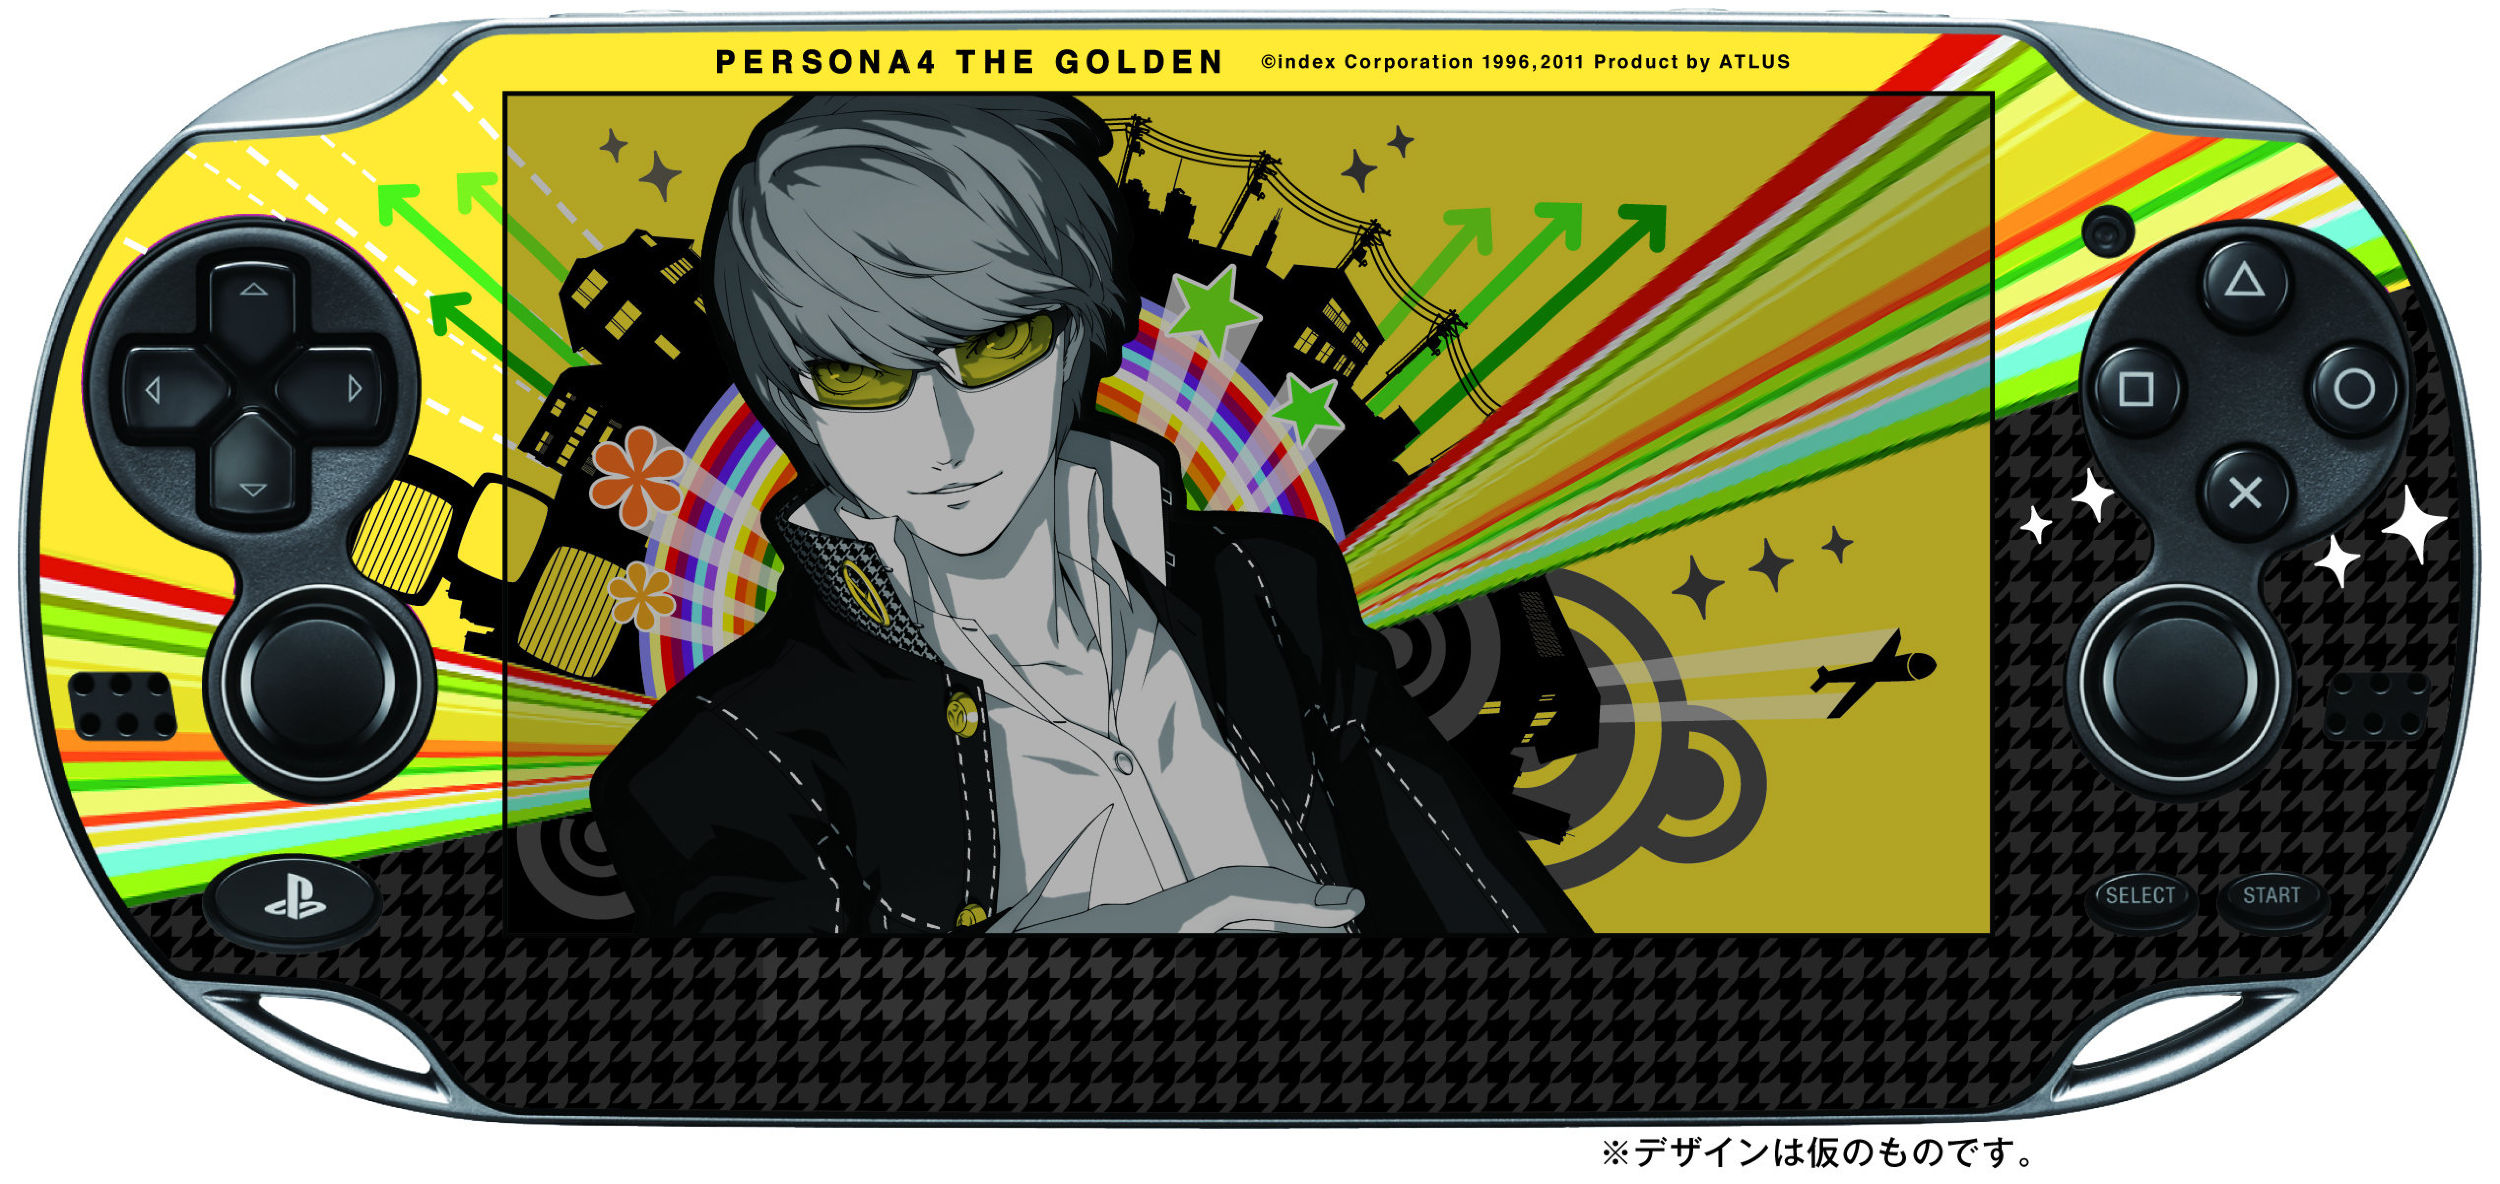 First Look At Persona 4 The Golden S Box Art Rpg Site